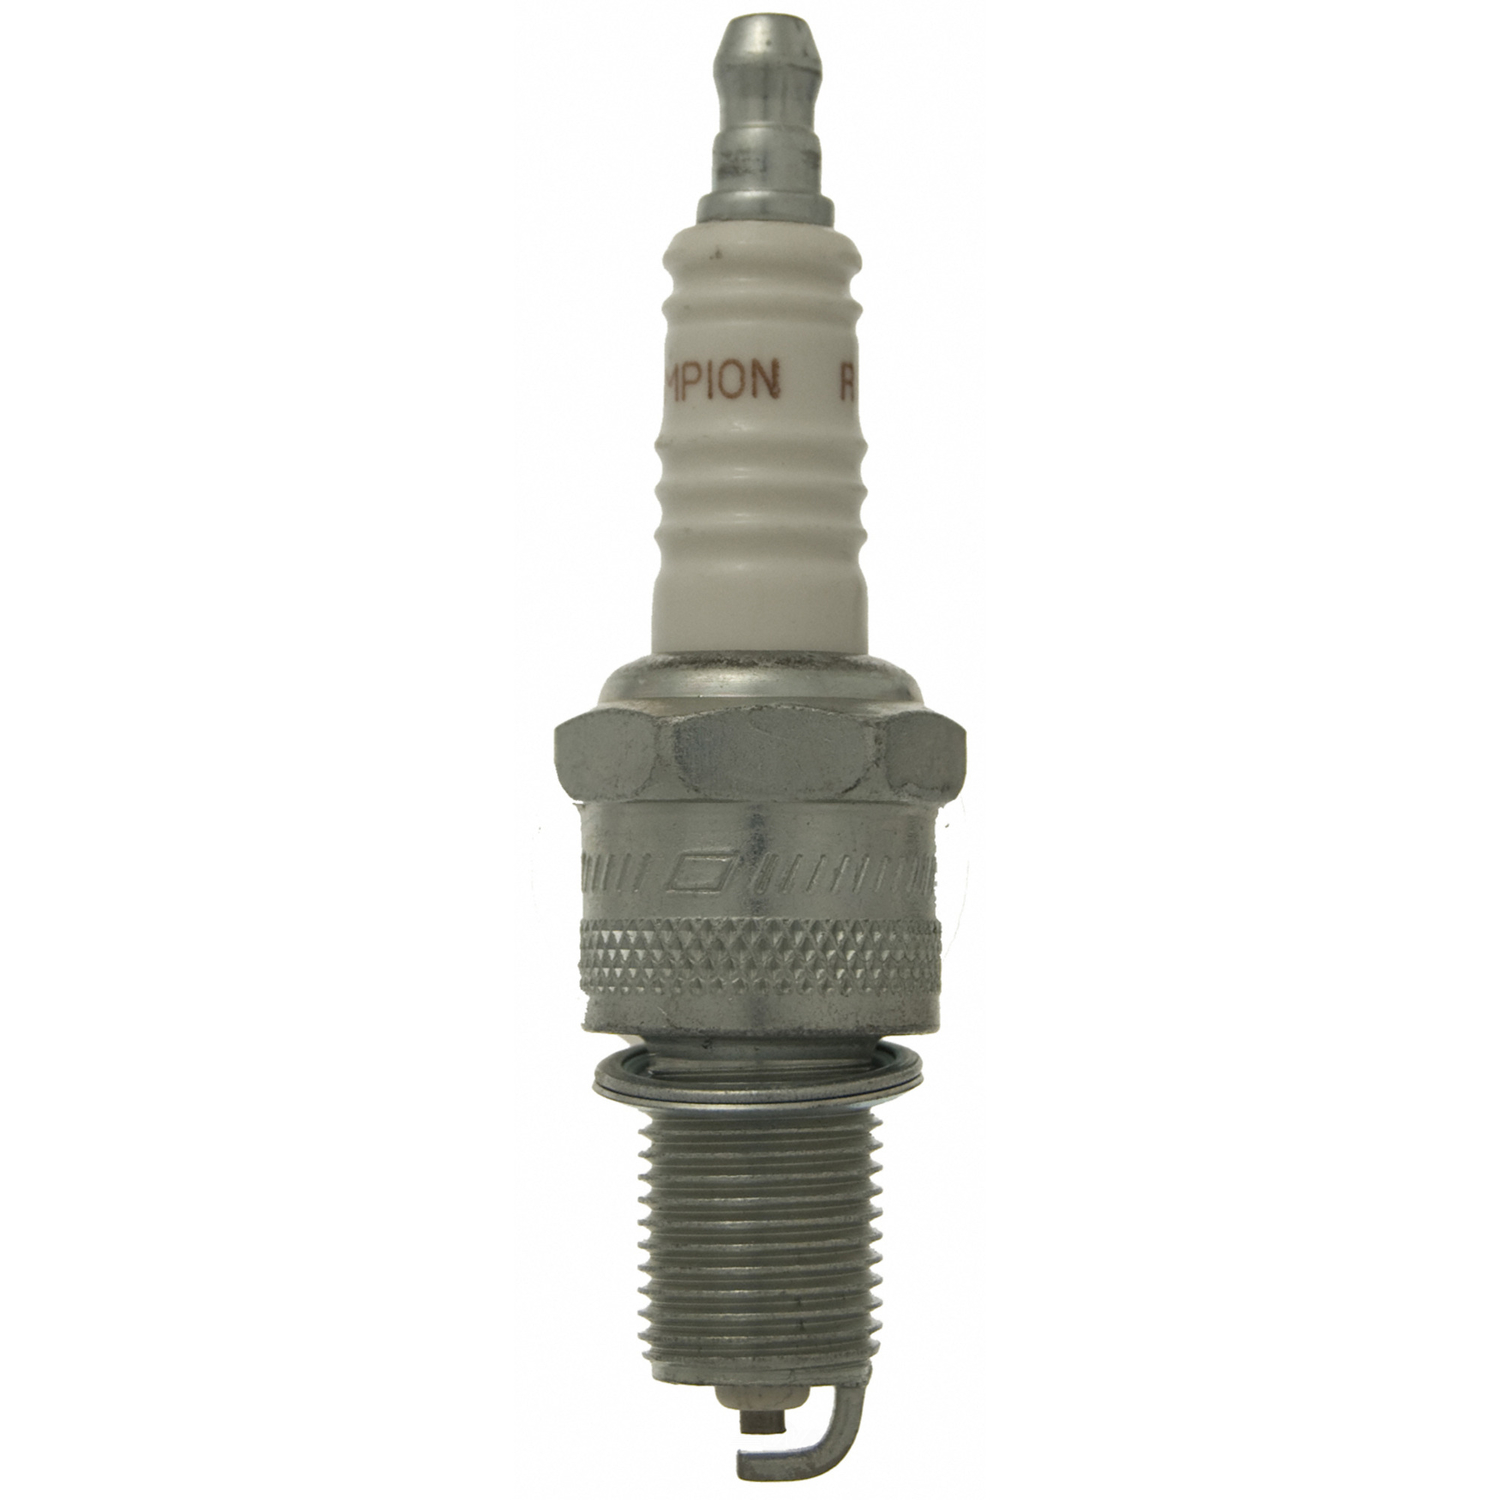 CHAMPION SPARK PLUGS - Copper Plus - CHA 813